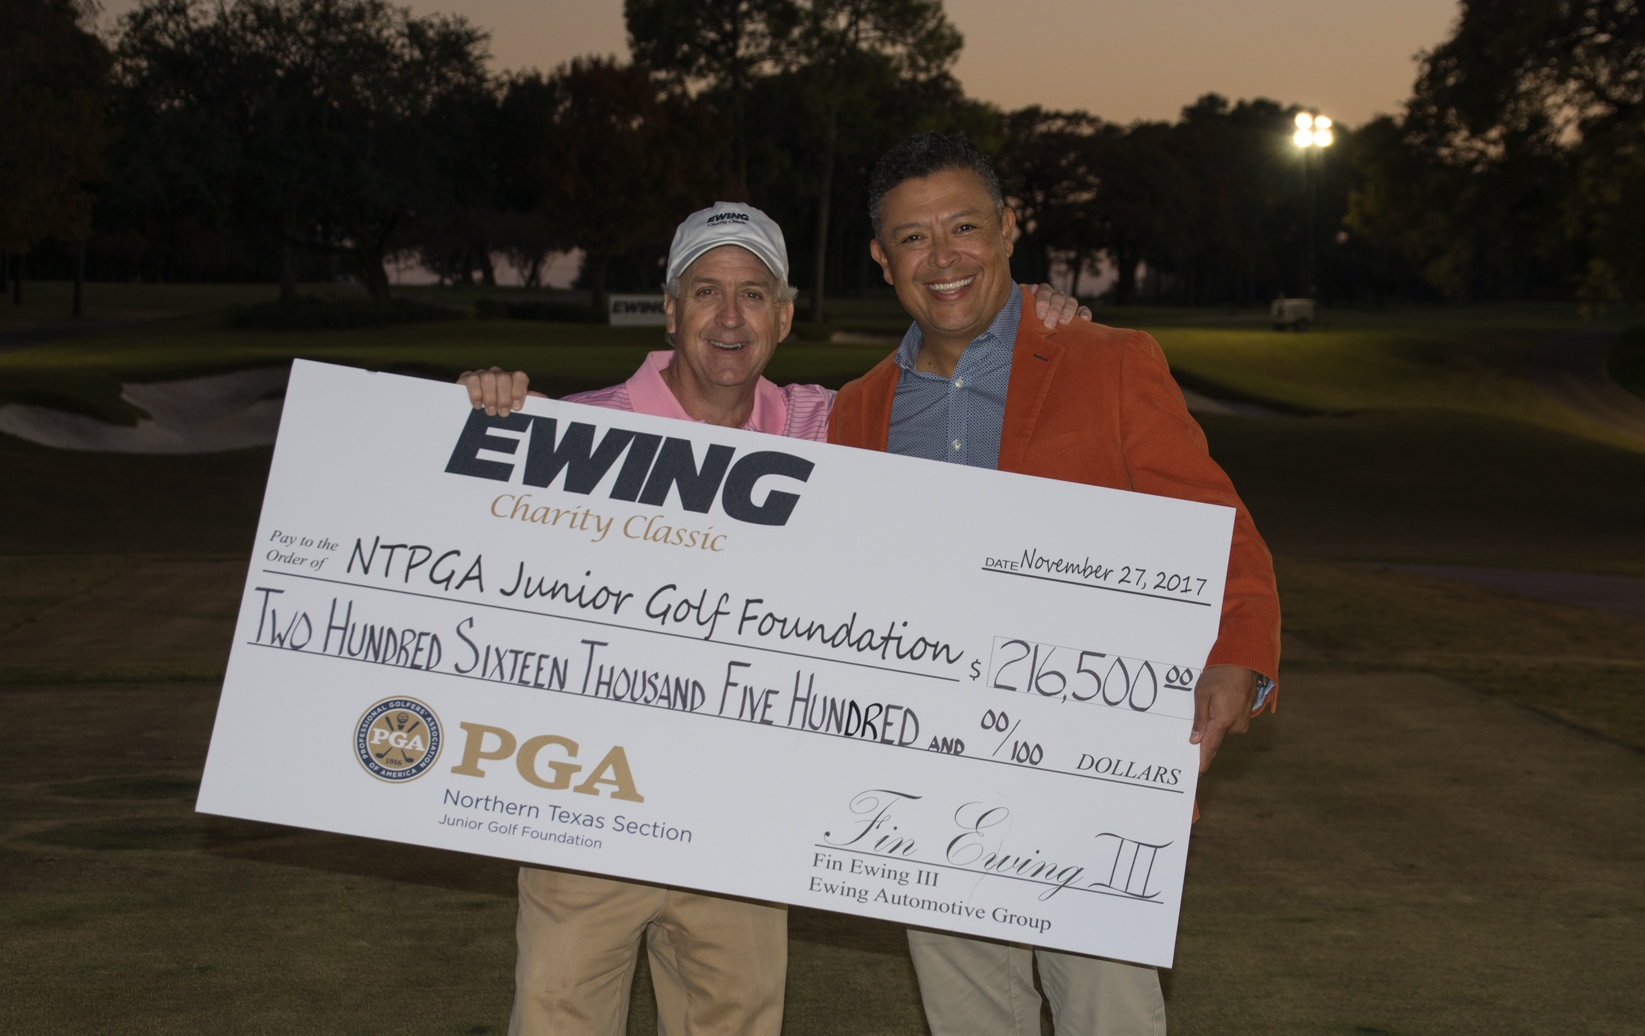 Ewing Charity Classic Benefits NTPGA Junior Golf Foundation, PGA Professional Takes Home Car Thanks to Ewing Automotive Group